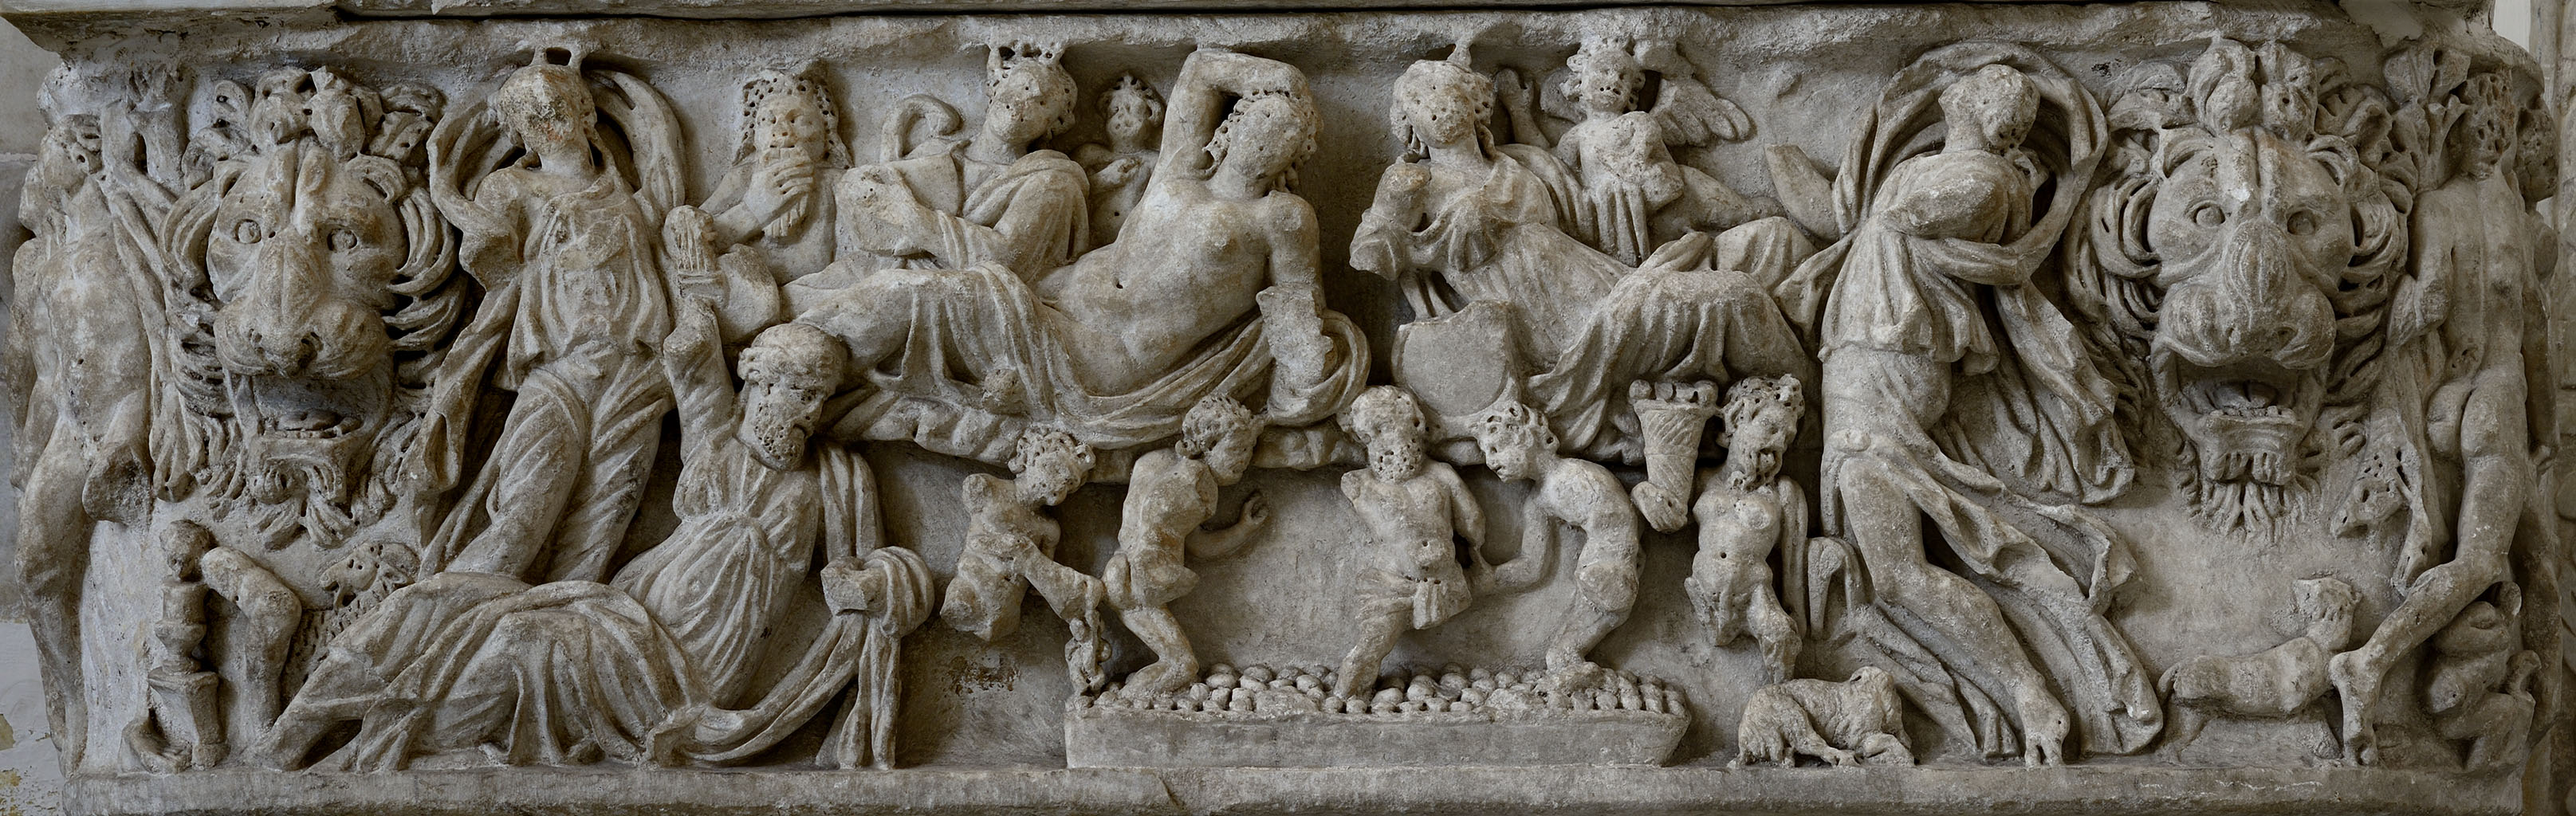 Dionysiac lenos-sarcophagus with the vintage scenes (the front panel). White marble. Beginning of the 3rd cent. CE. Salerno, Cathedral